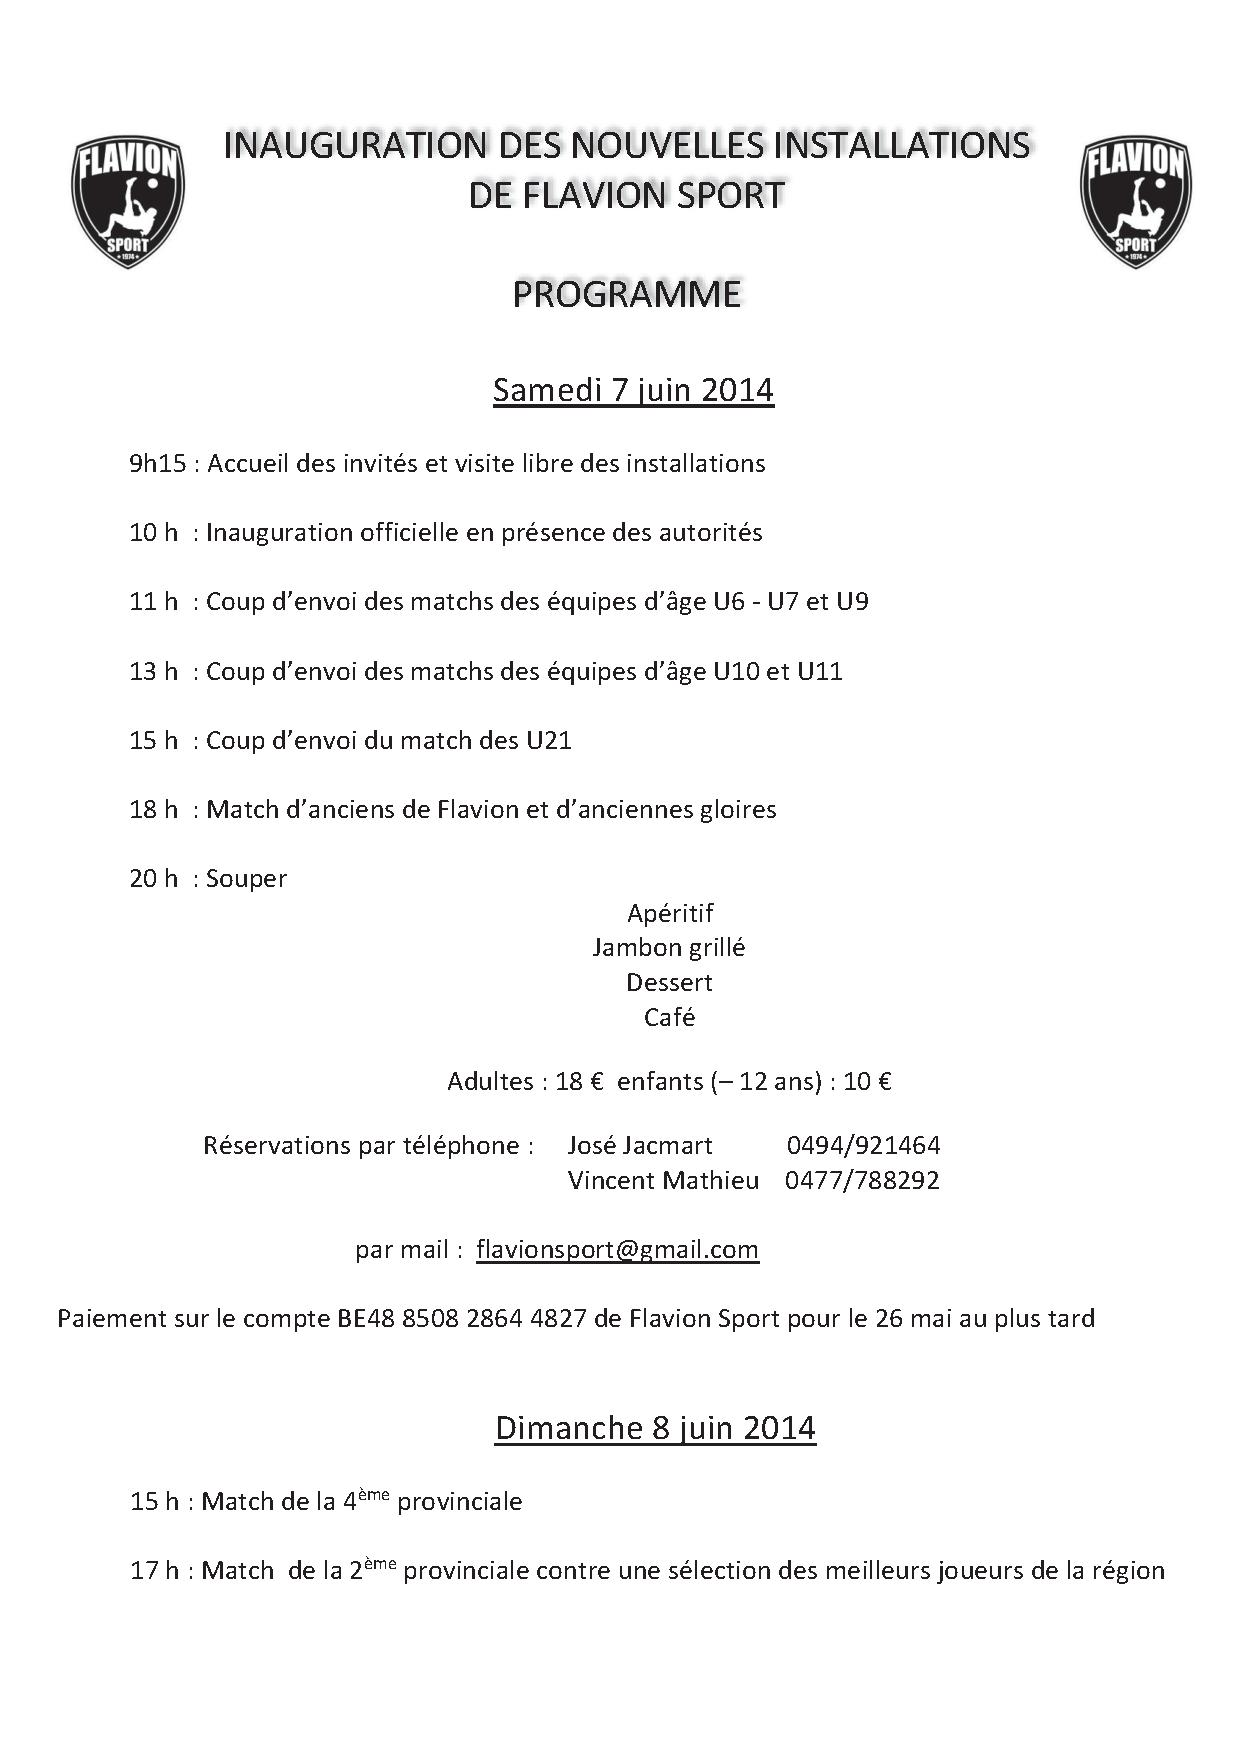 programme inauguration